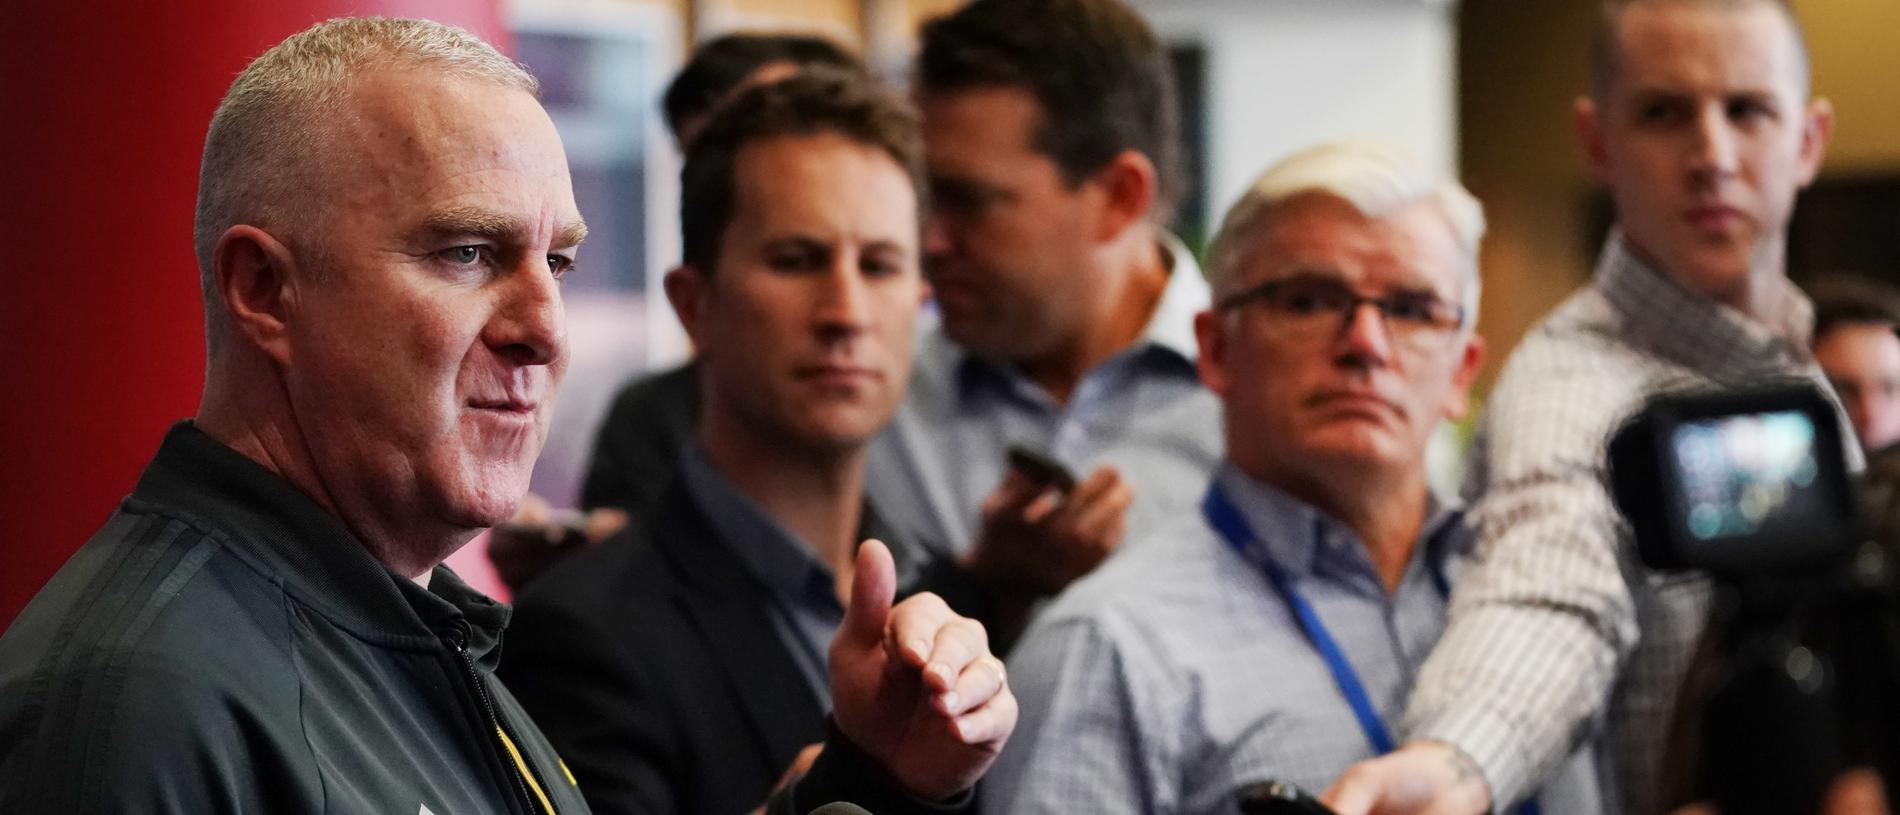 Hawthorn Hawks list manager Graham Wright speaks to media during the opening day of the AFL trade period as club representatives begin trade discussions in Melbourne, Monday, October 7, 2019. (AAP Image/Michael Dodge) NO ARCHIVING